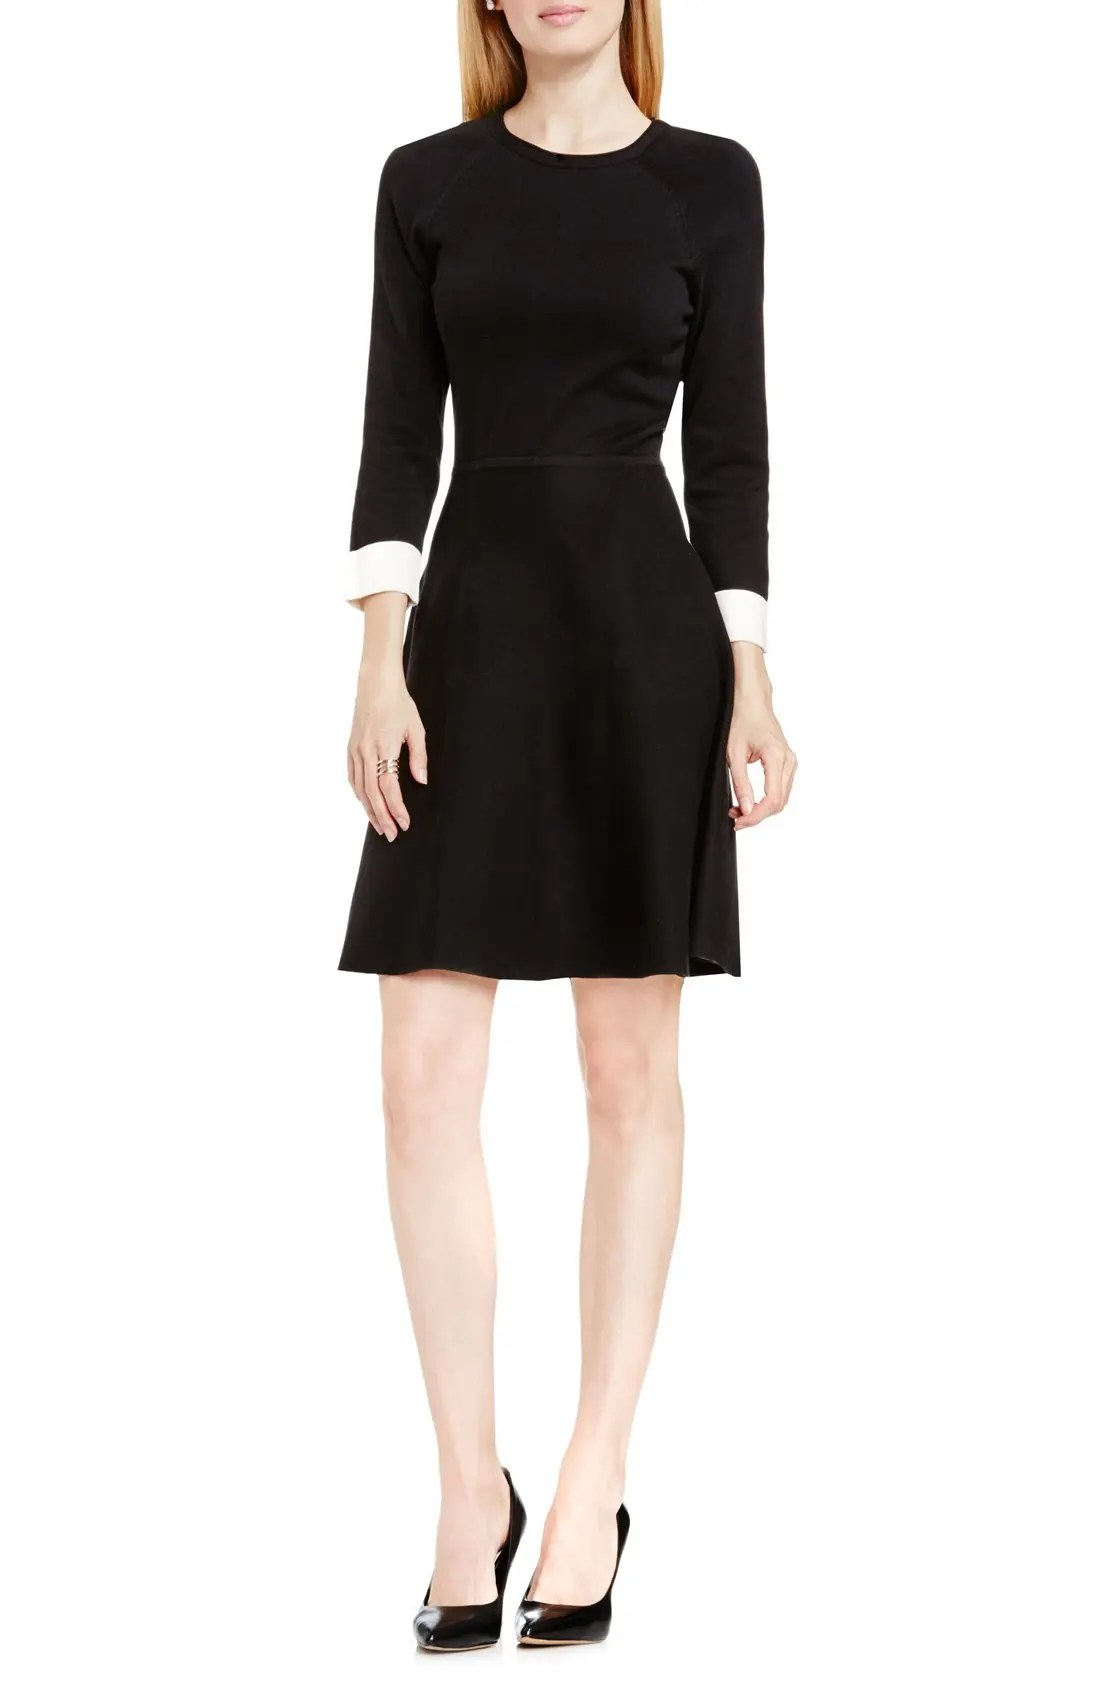 Fit & Flare Petite Sweater Dress VINCE CAMUTO $139